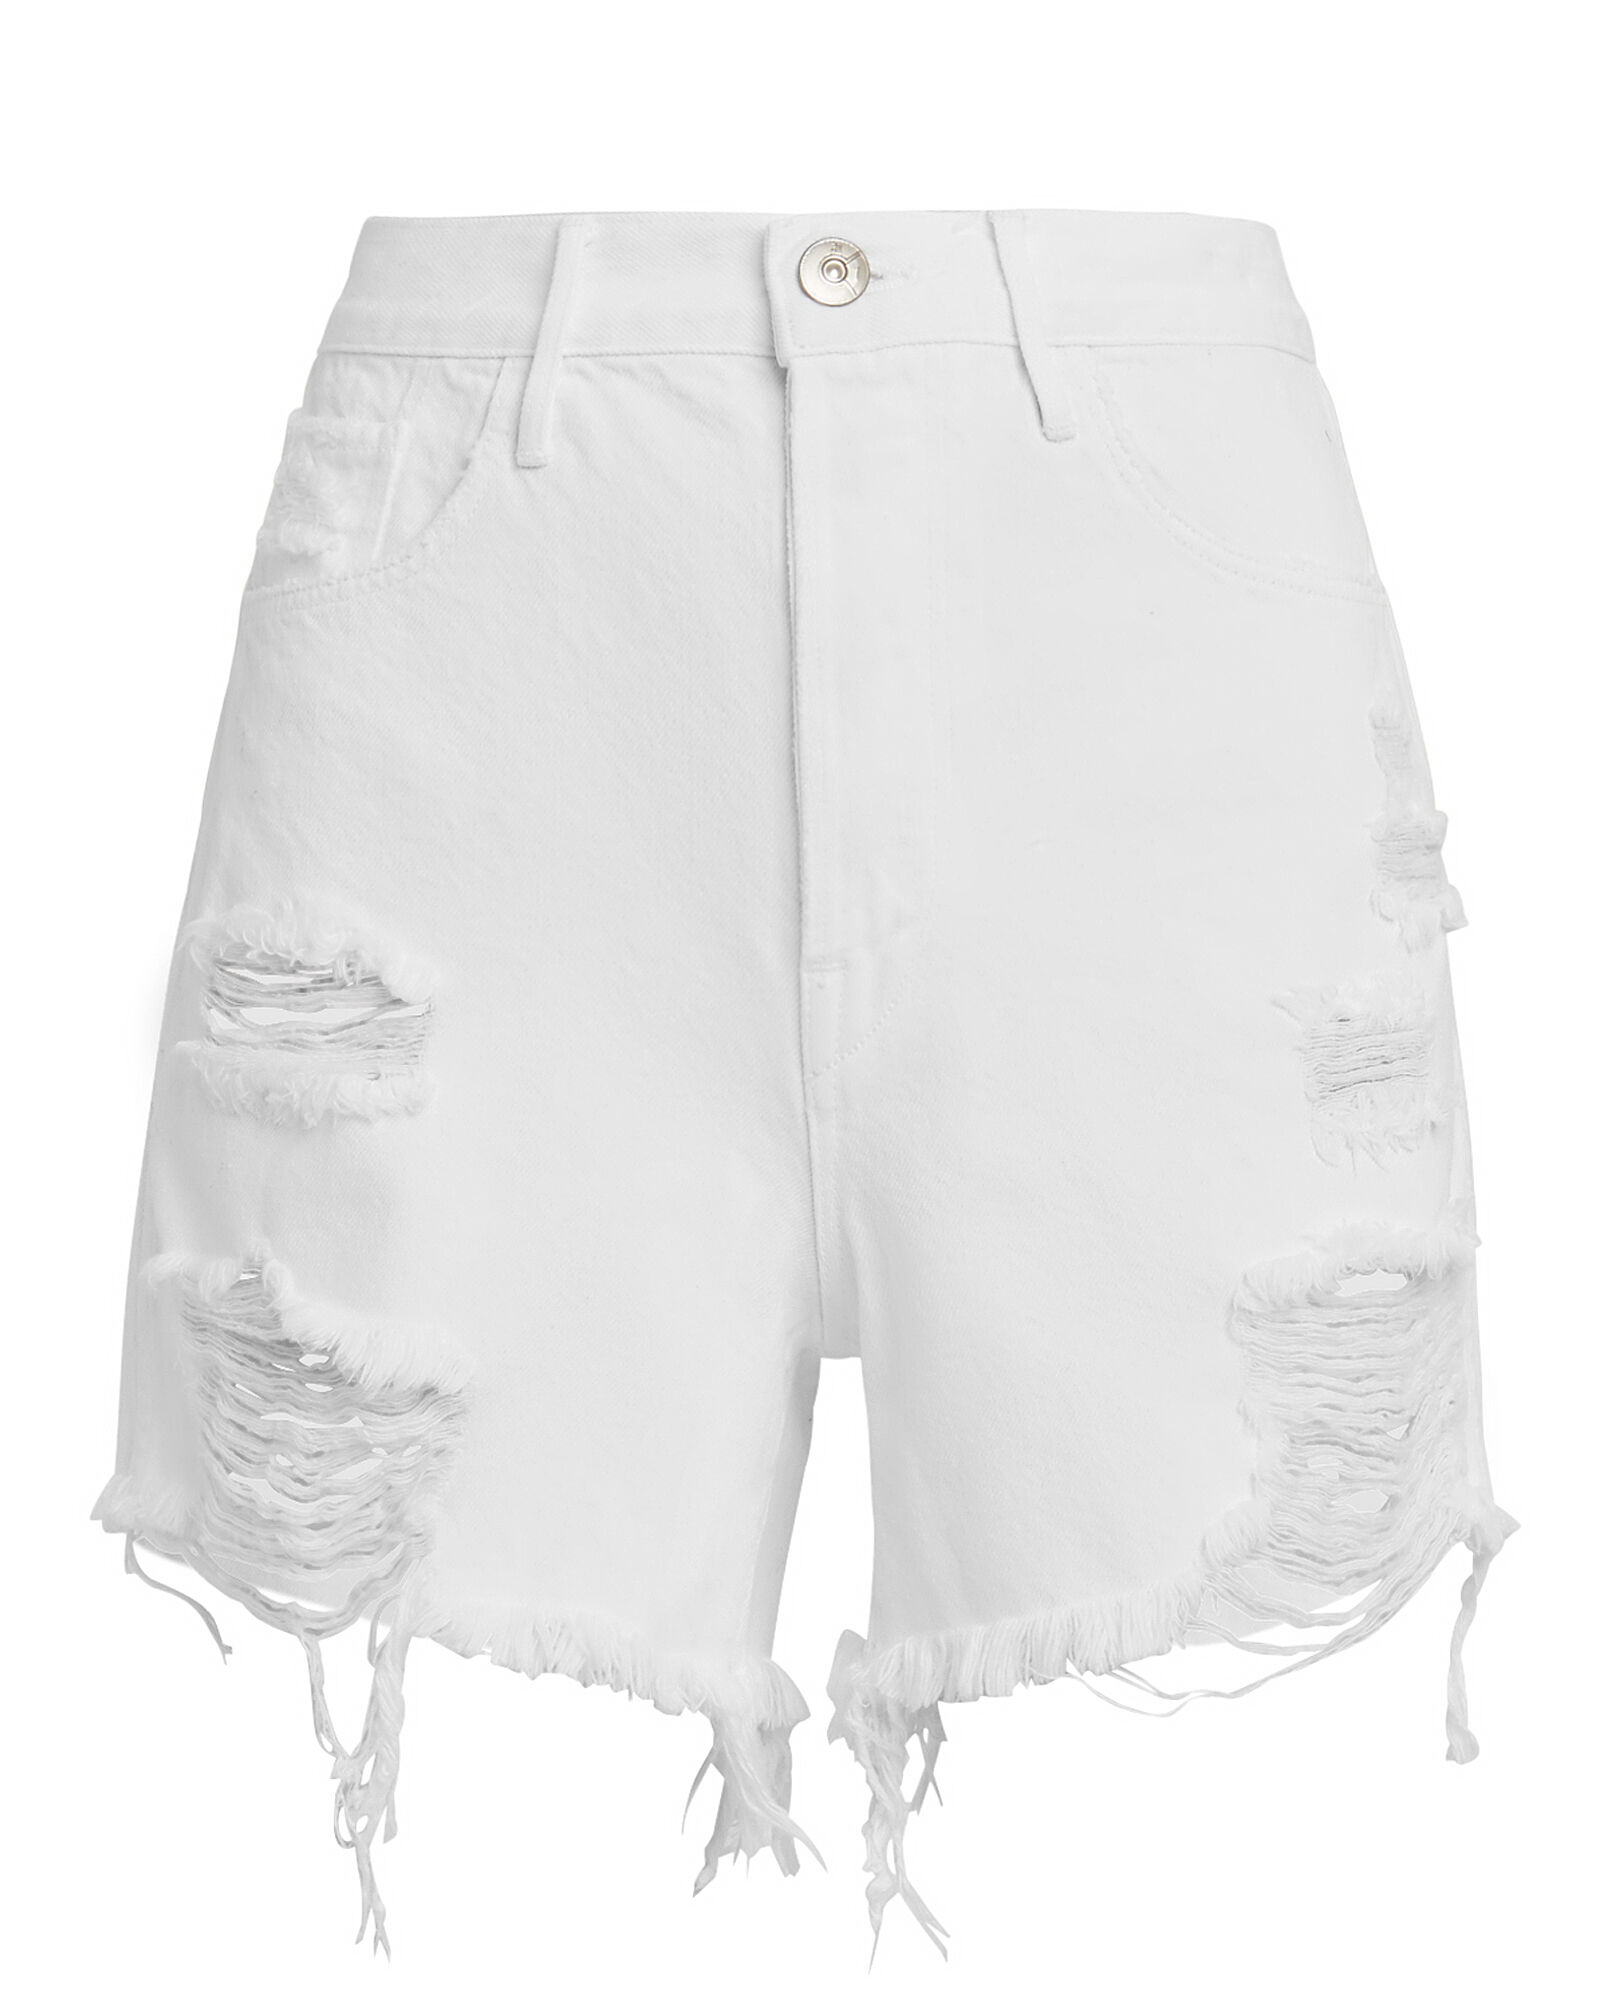 Blake Moonstone Shorts, WHITE, hi-res